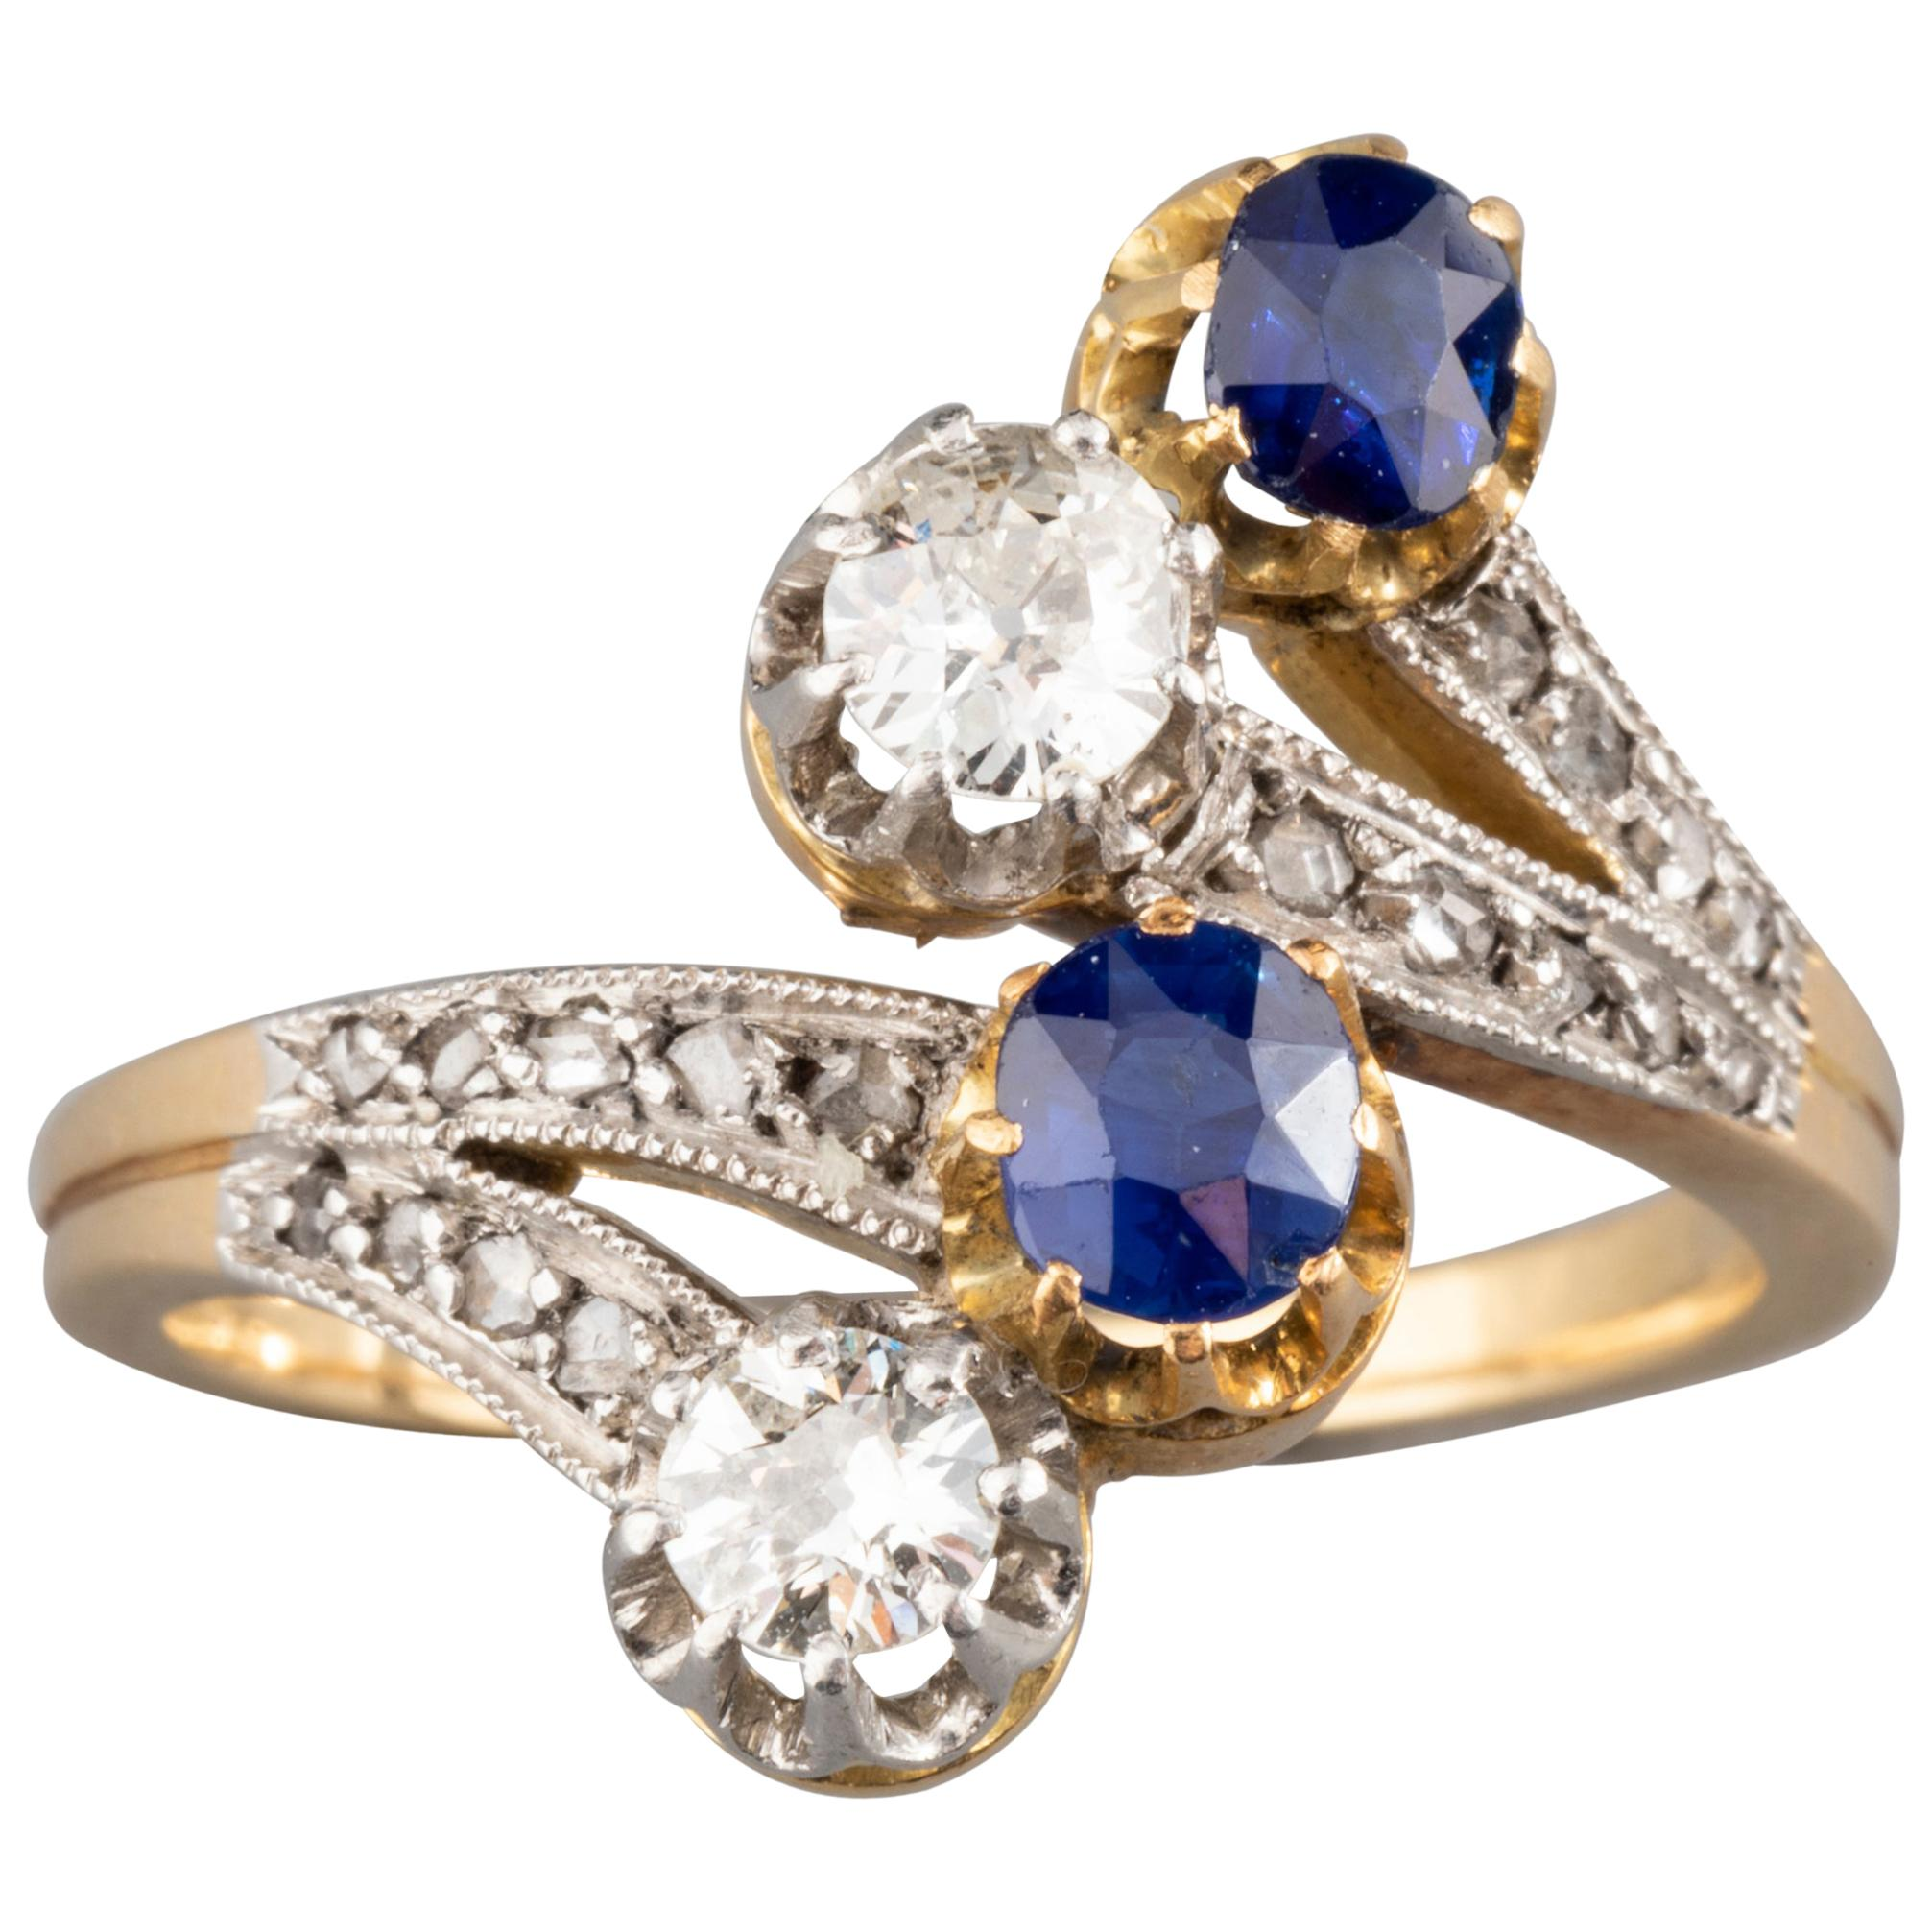 Antique Gold Sapphires and Diamonds French Belle Epoque Ring